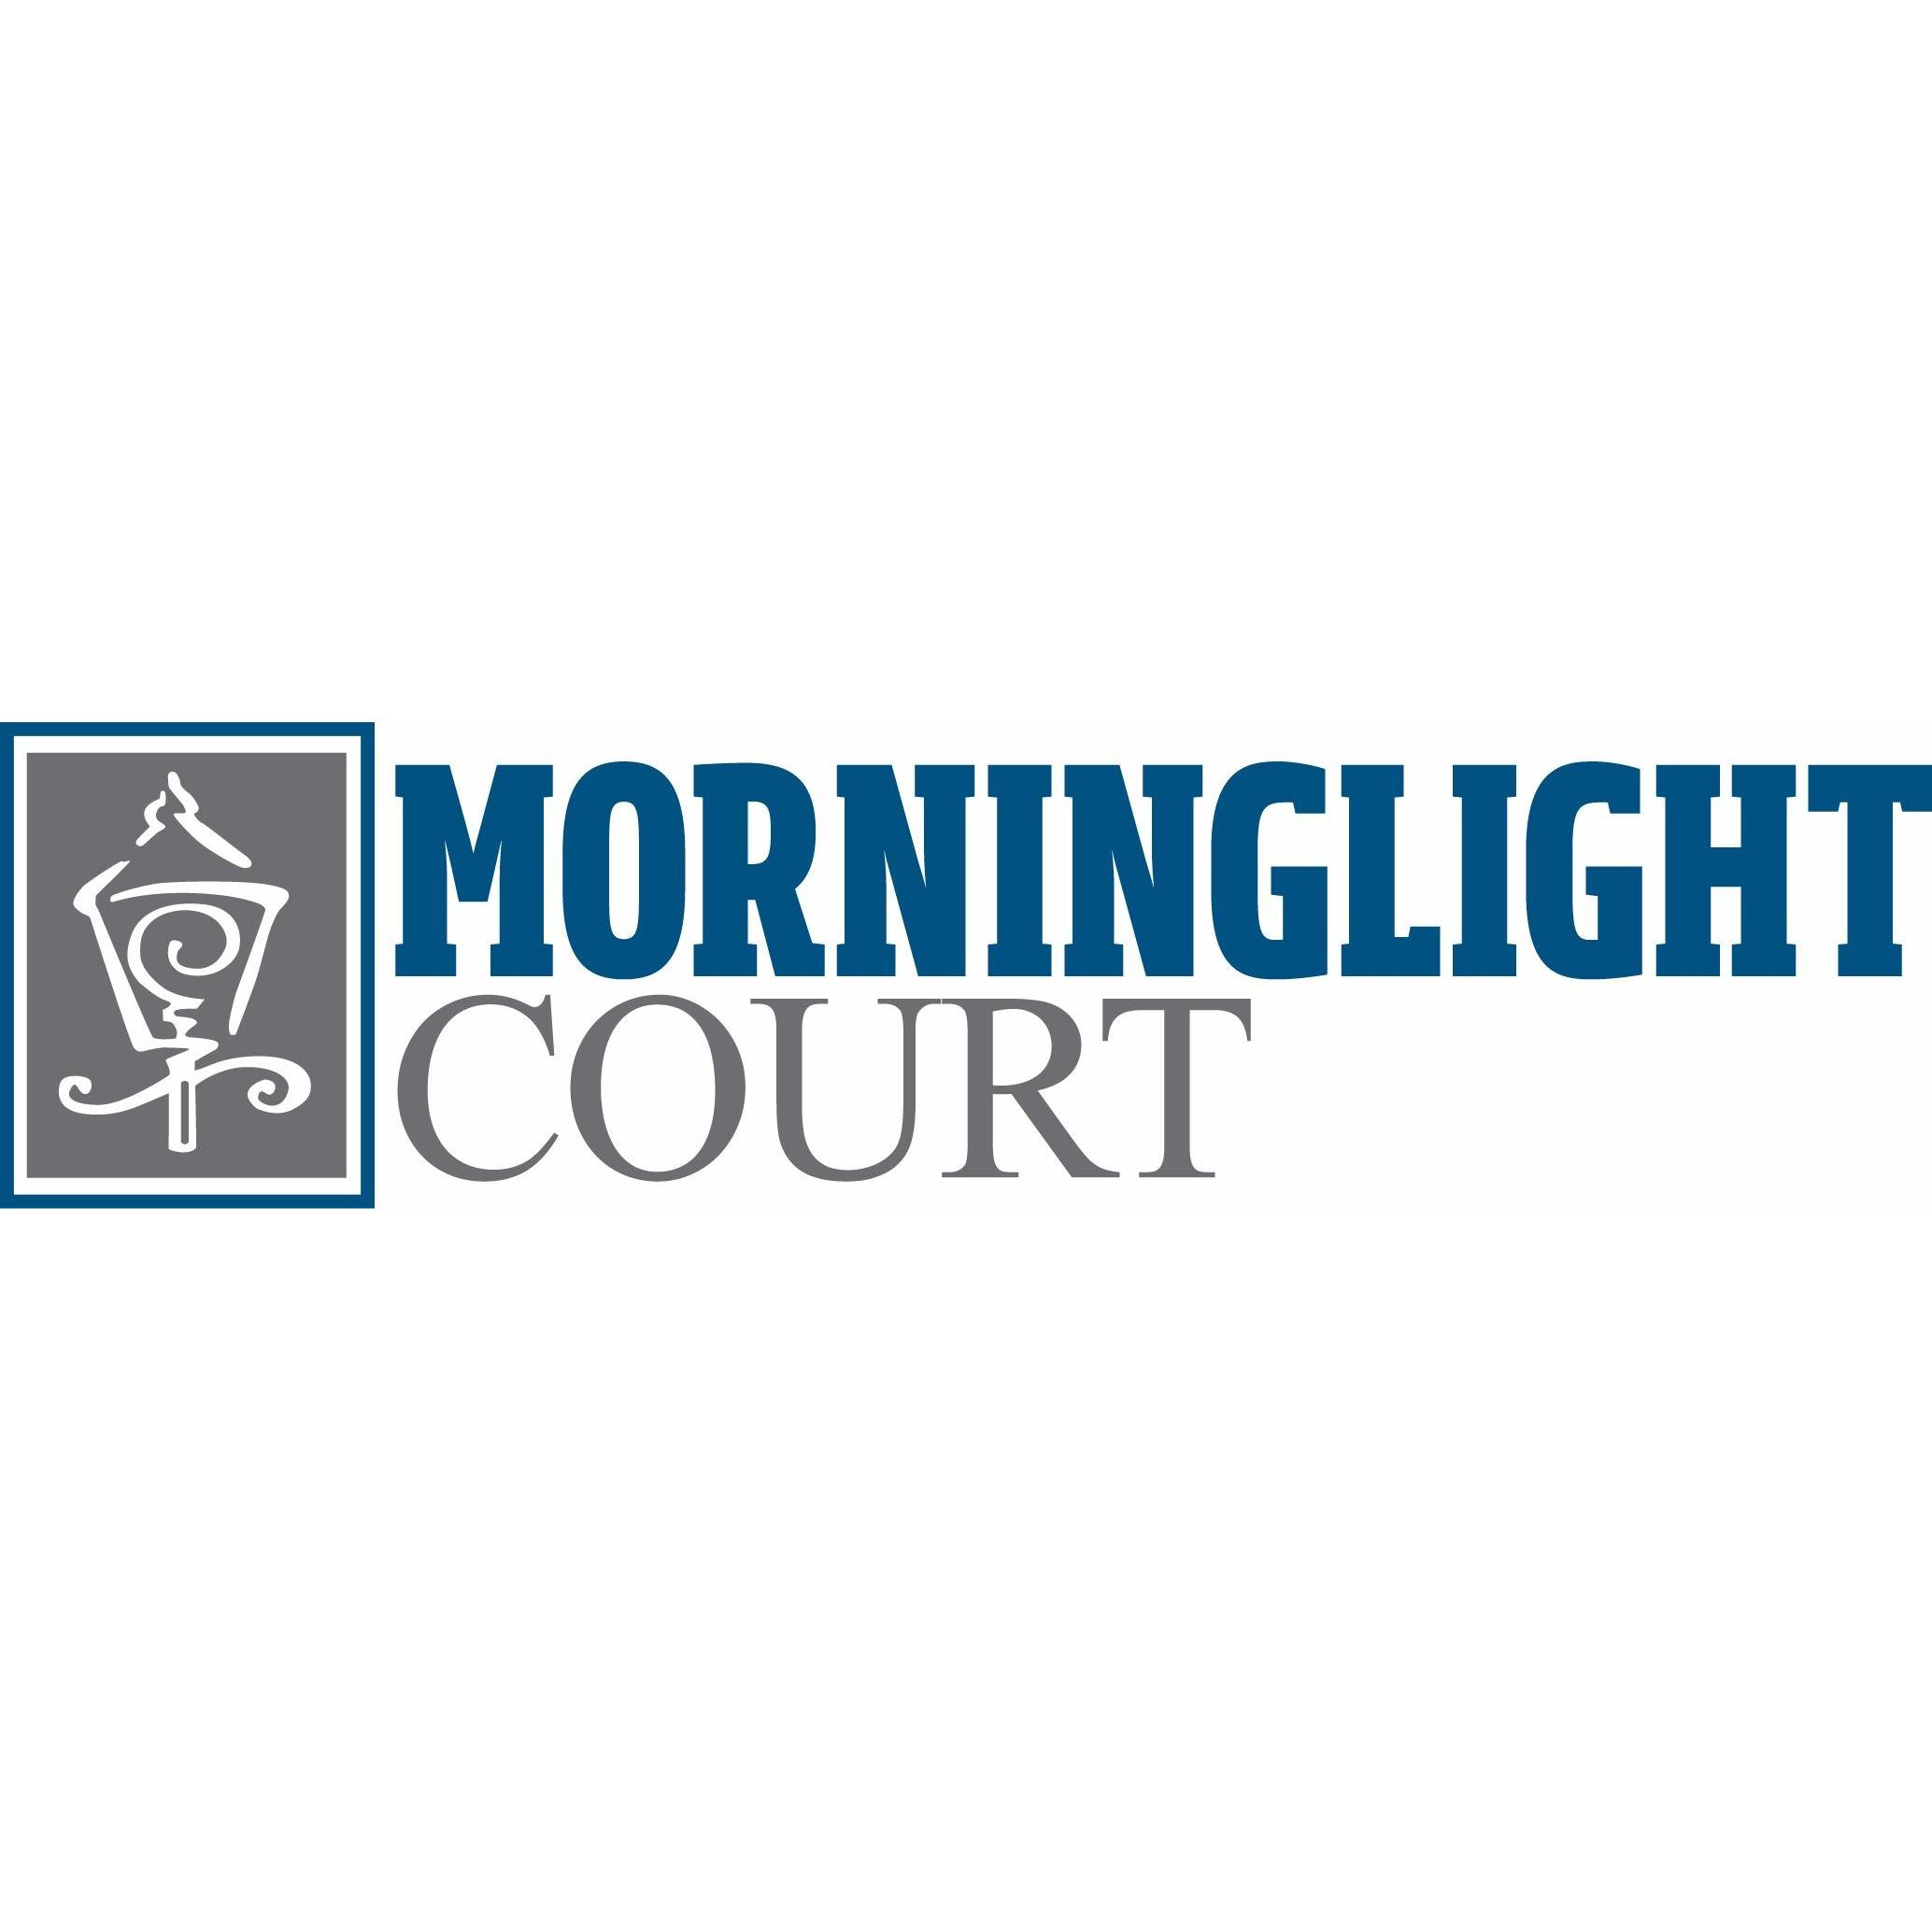 Morninglight Court